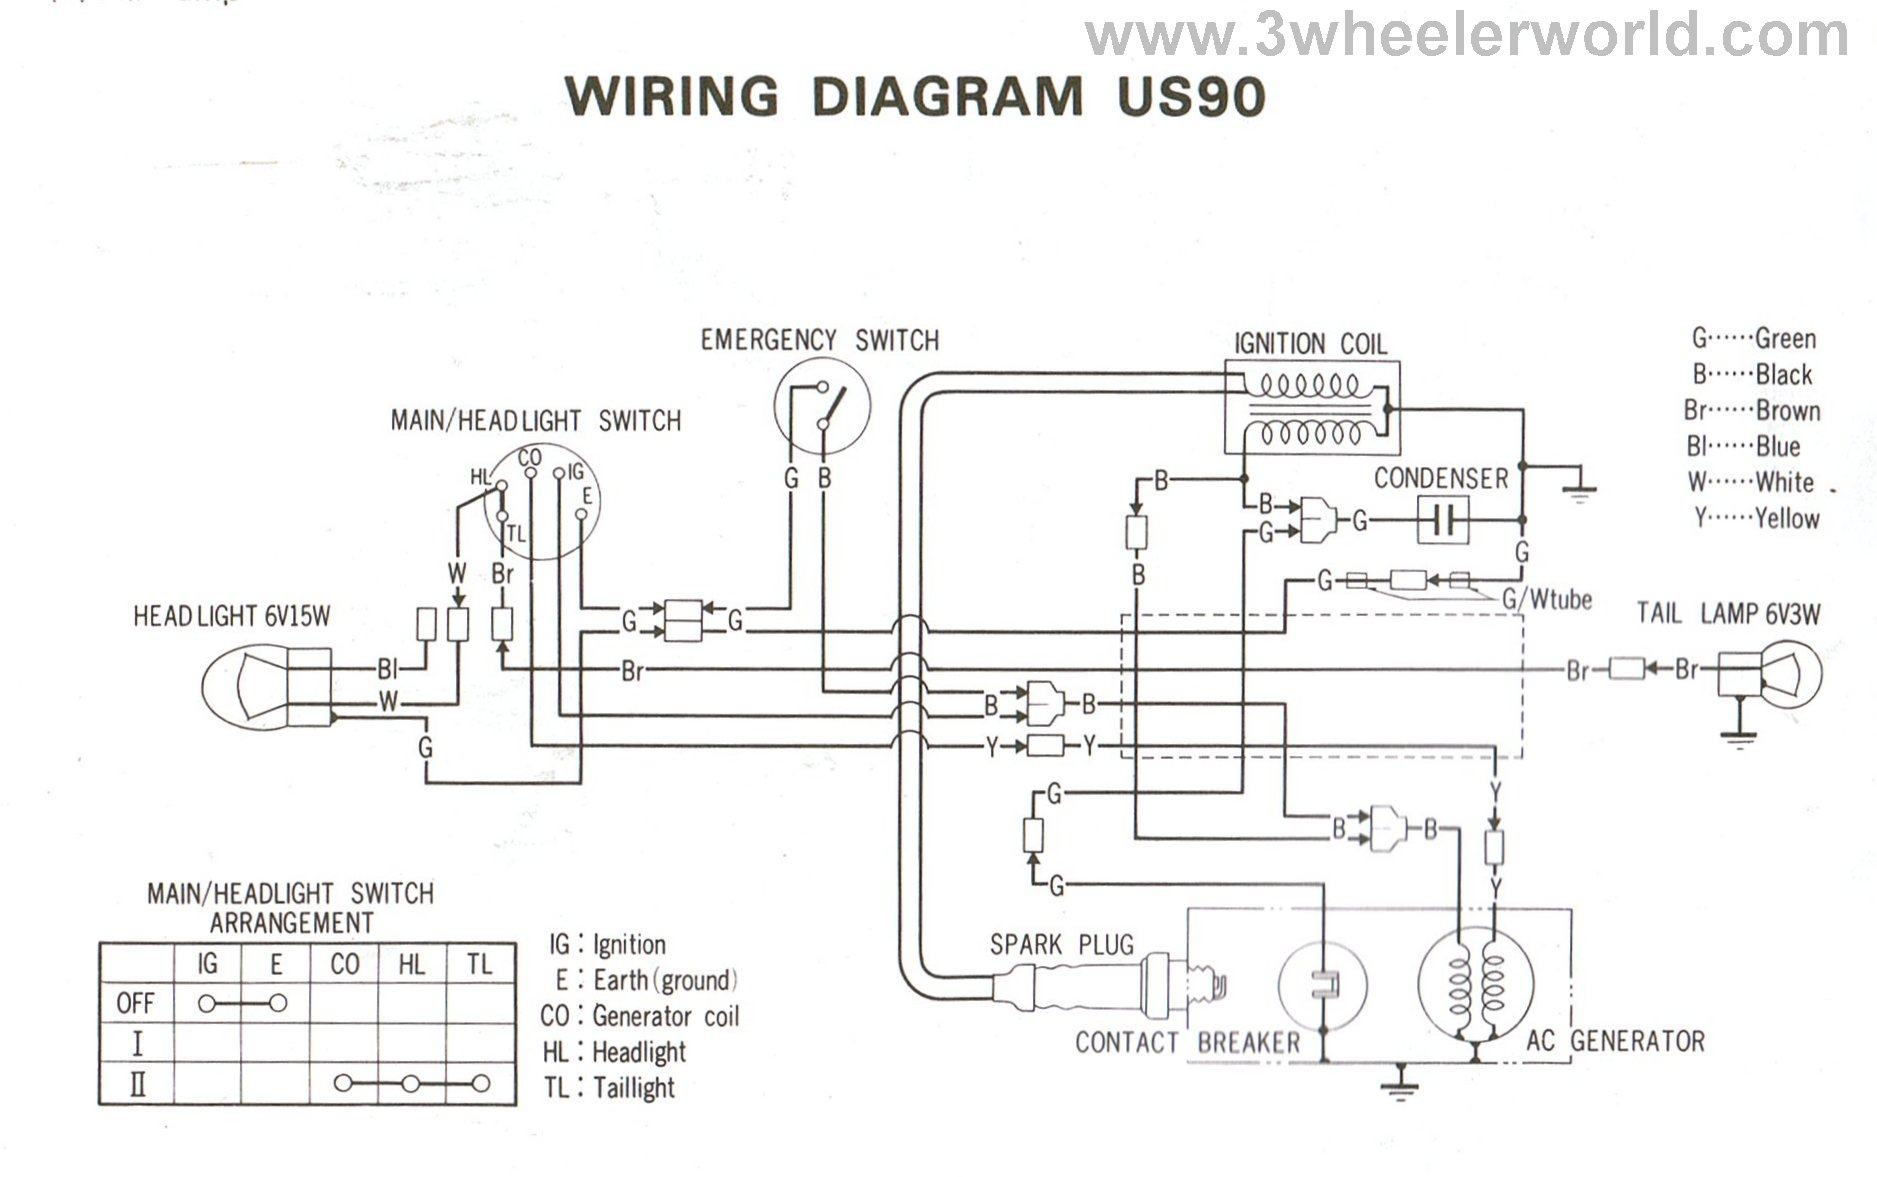 US90HM 3 wheeler world tech help honda wiring diagrams honda trail 90 wiring diagram at eliteediting.co